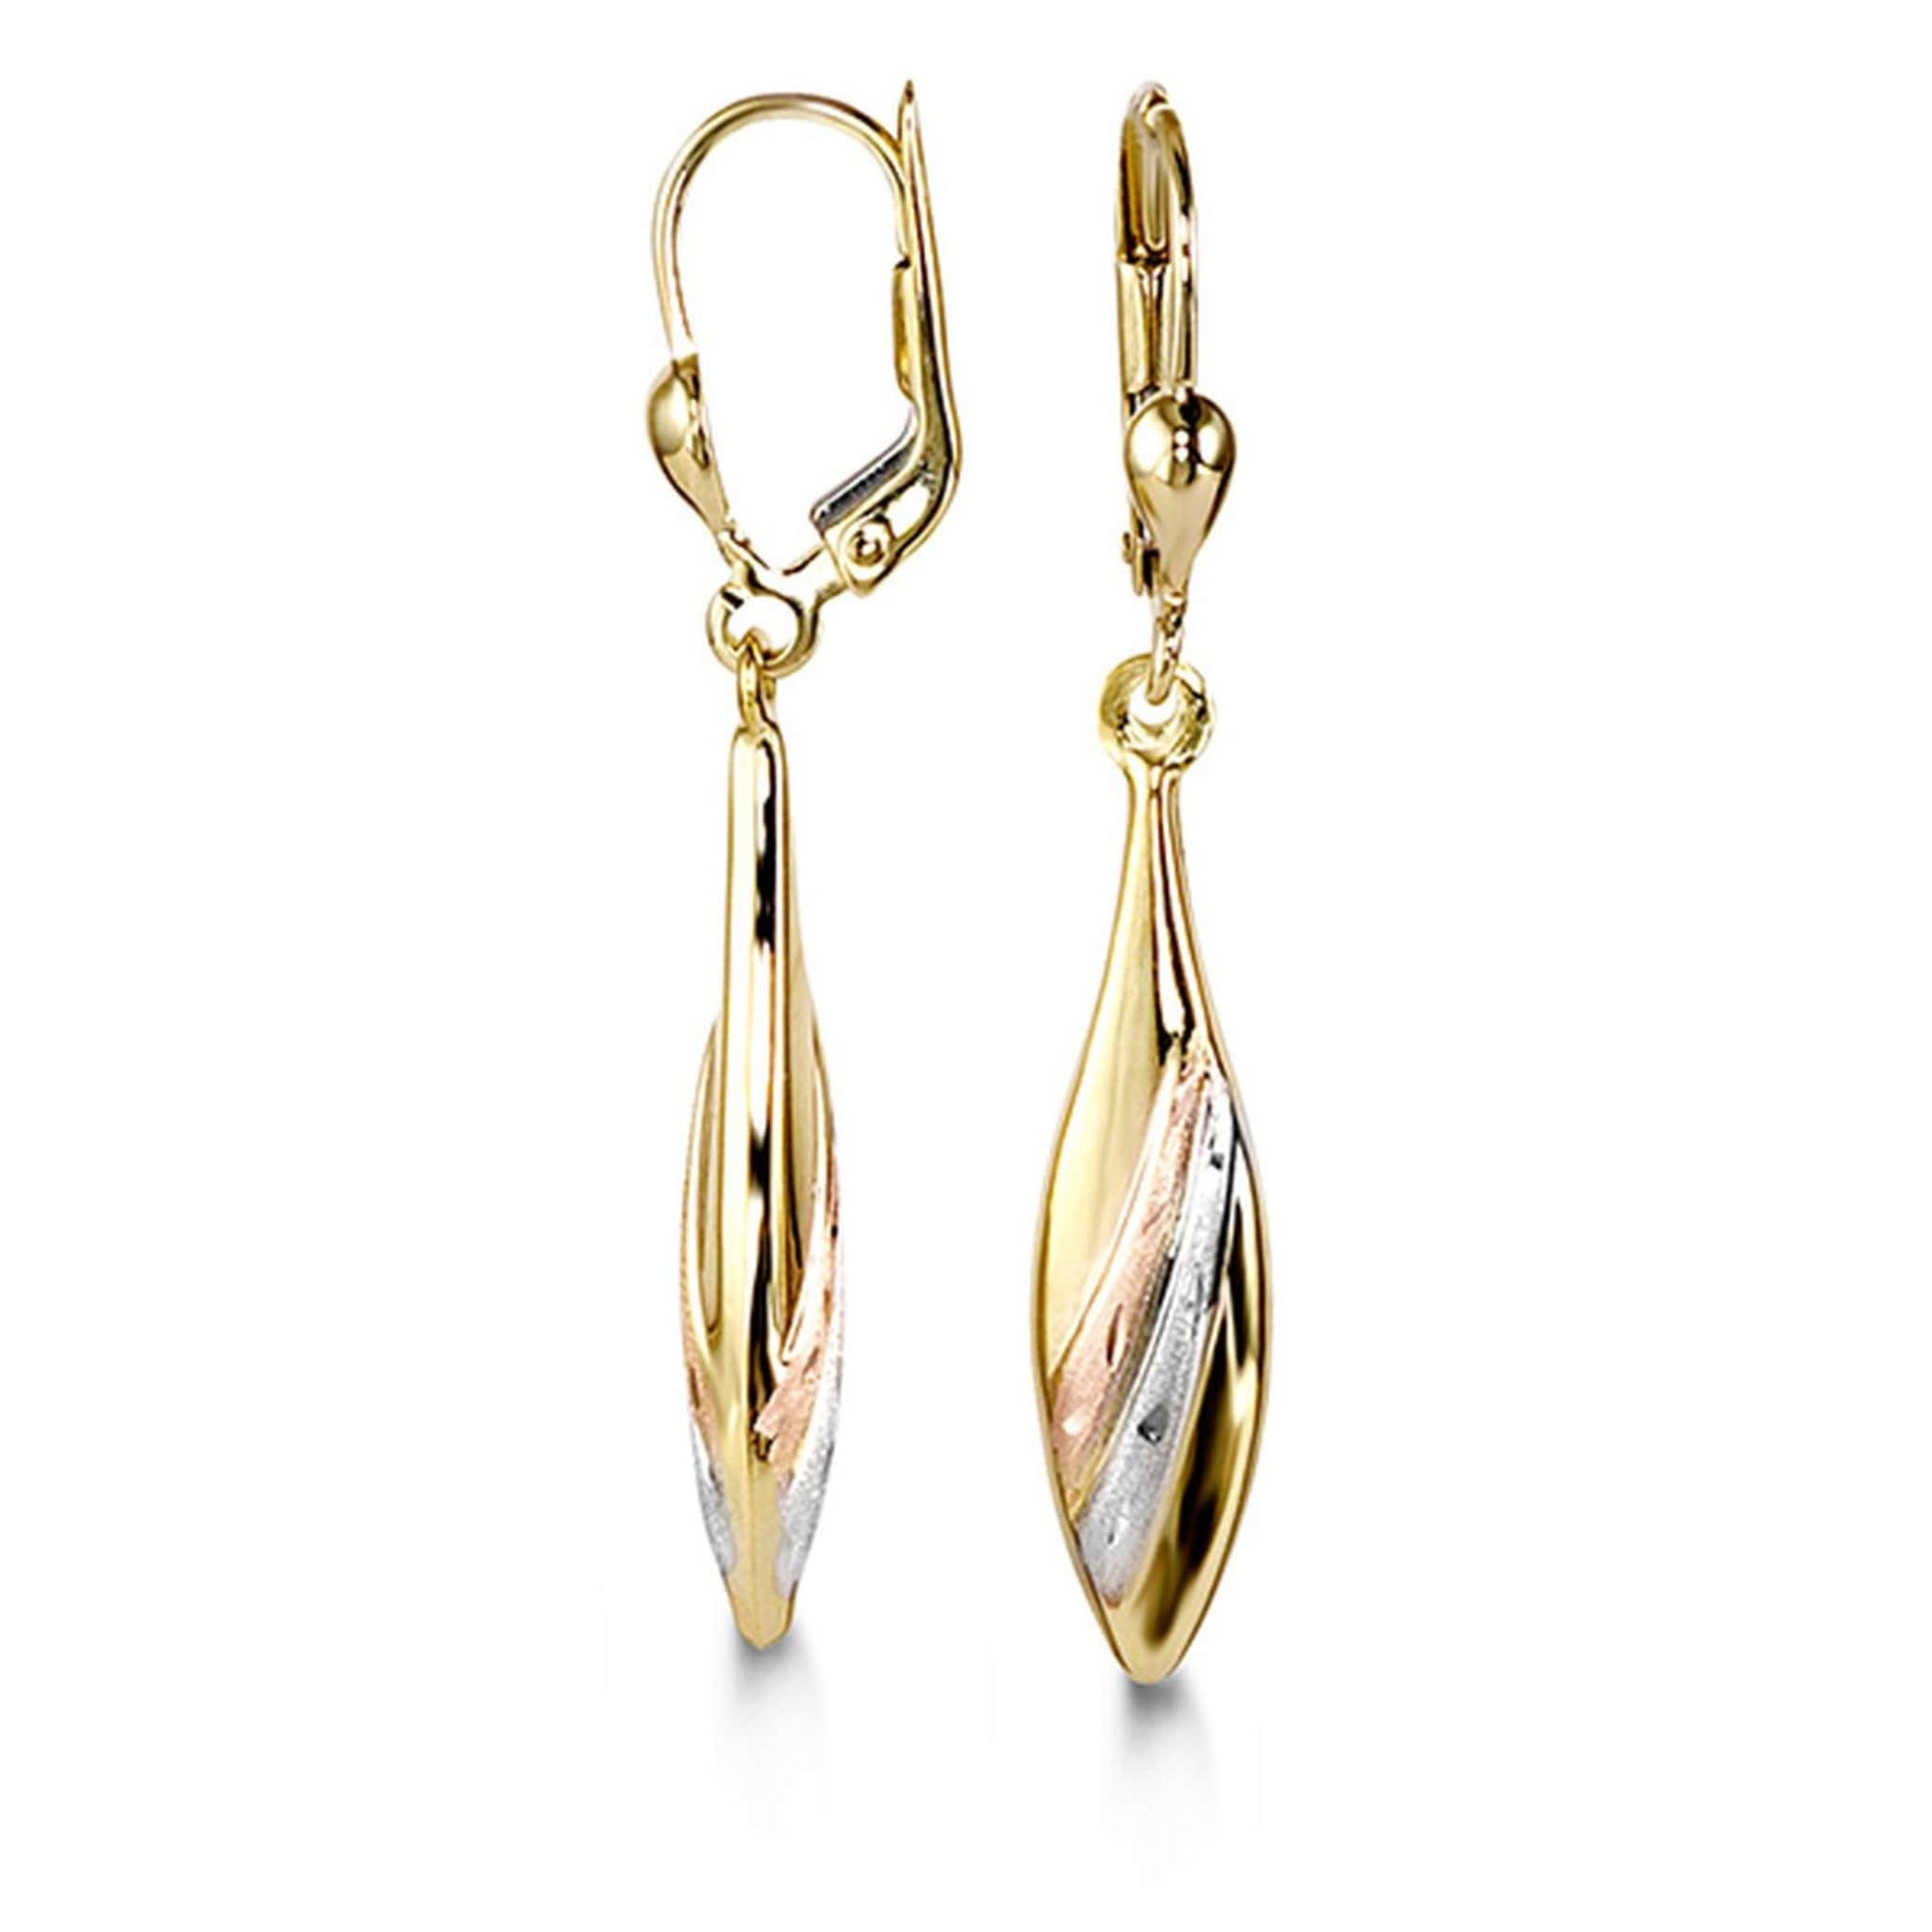 10K Tri-Gold Dangle Earrings at Arman's Jewellers